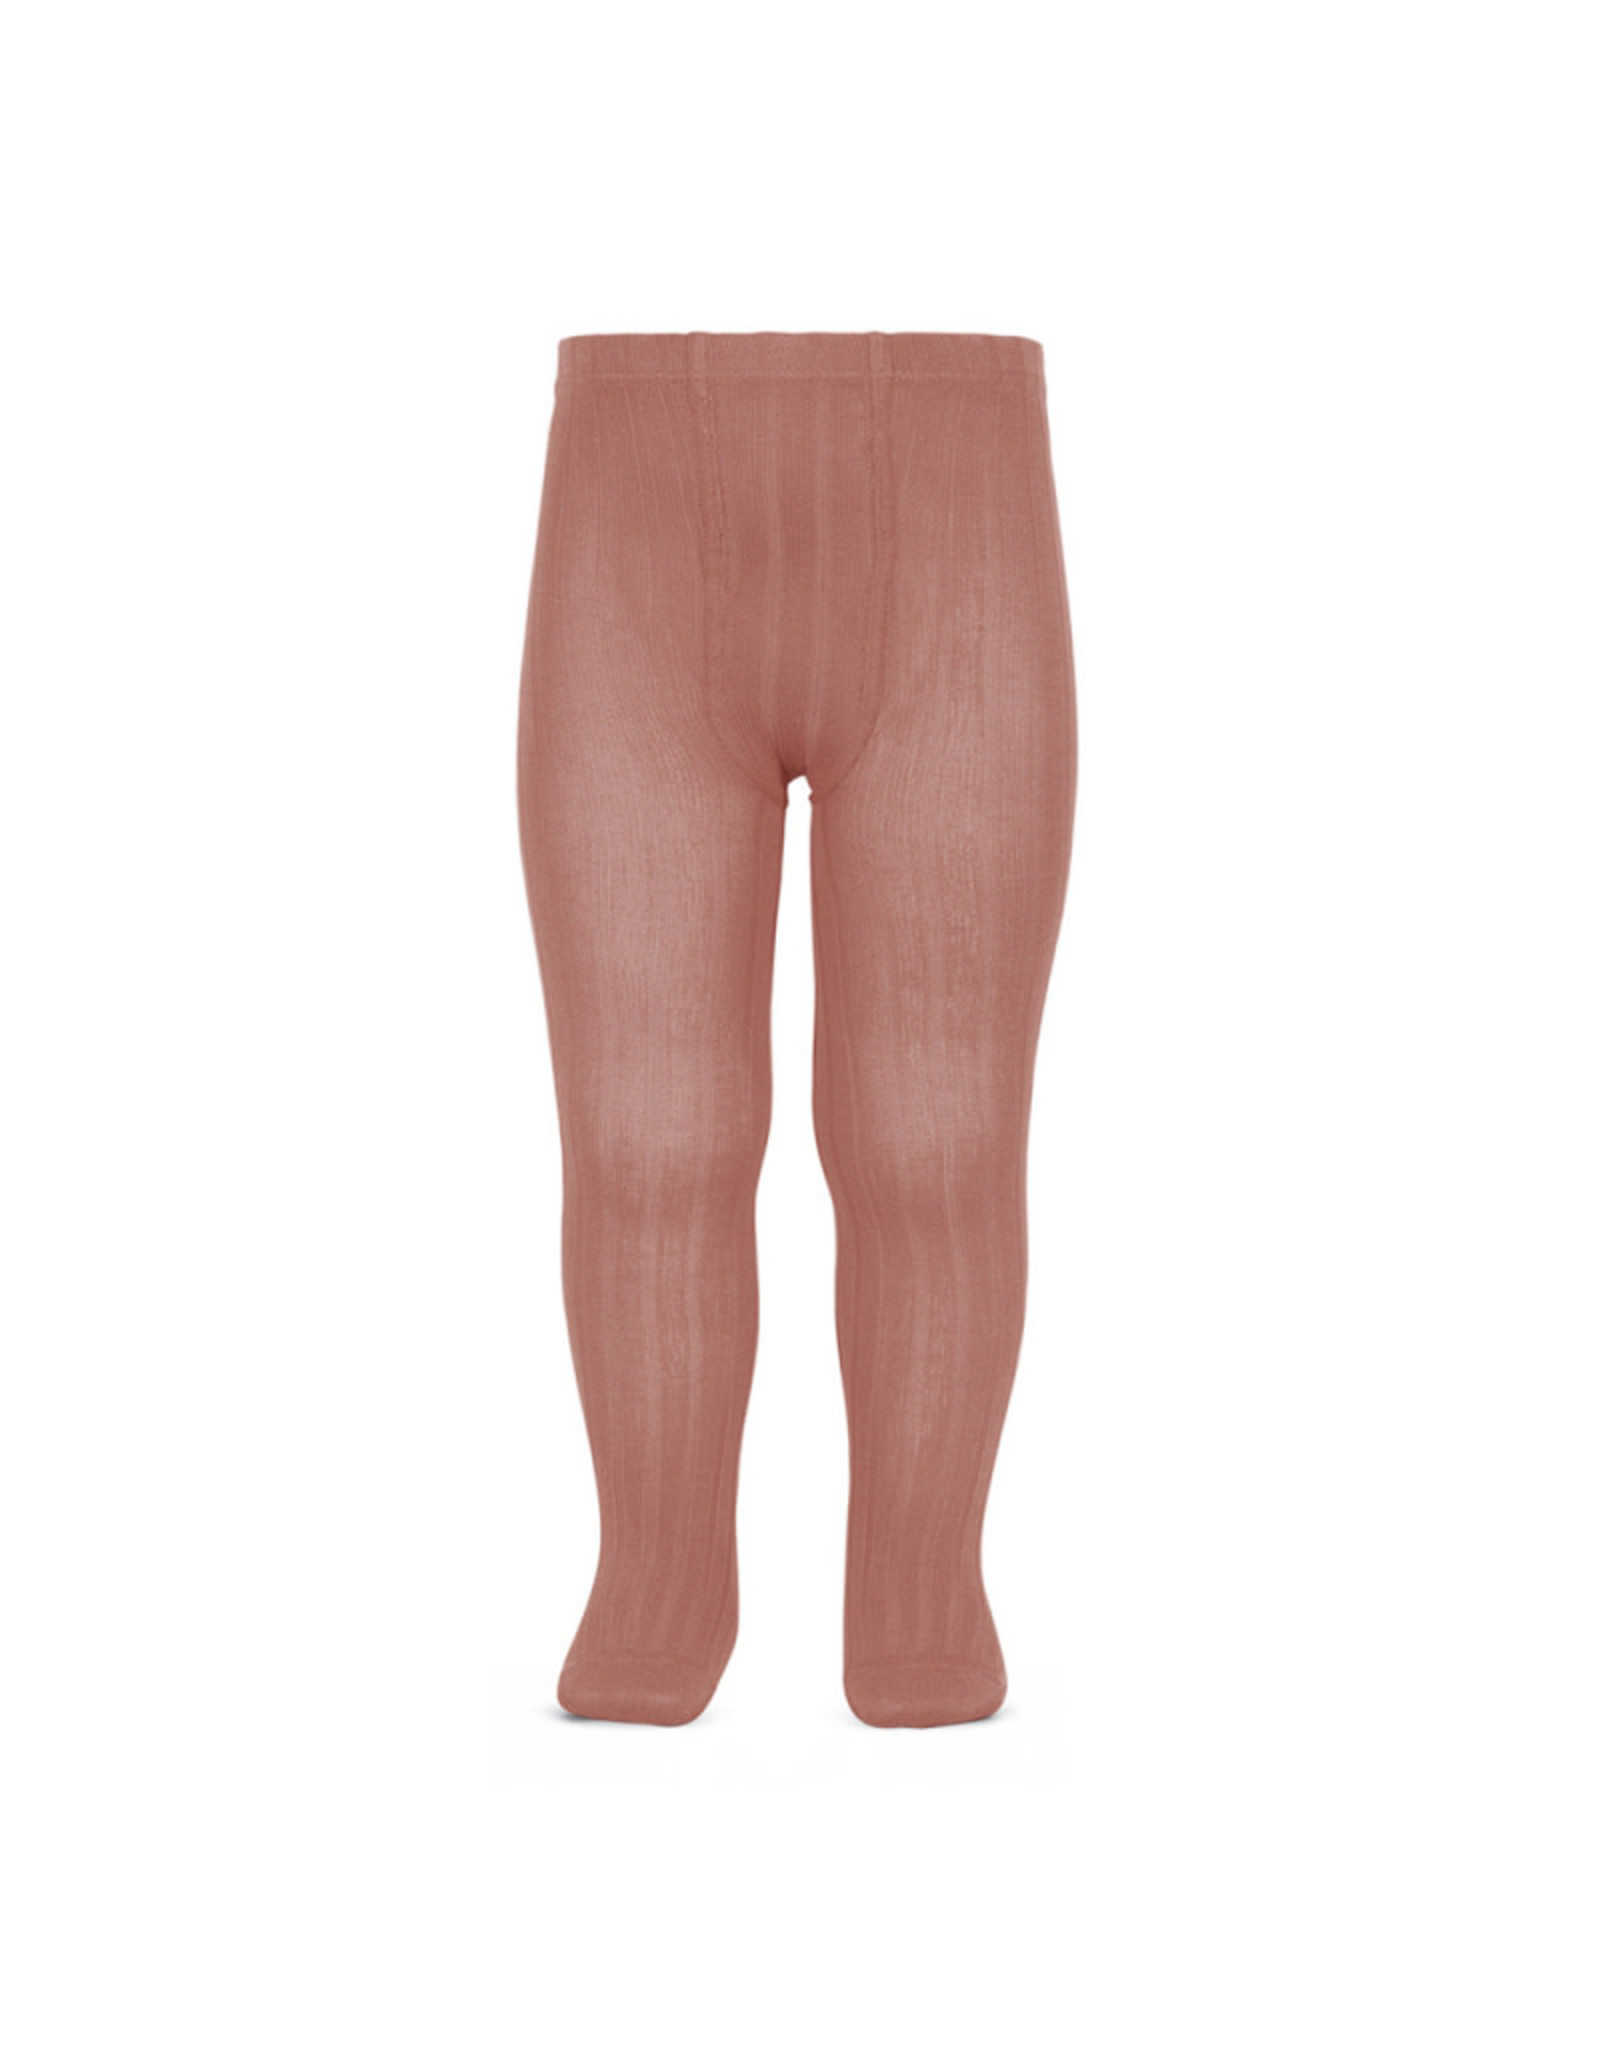 CONDOR Terracotta Ribbed Tights